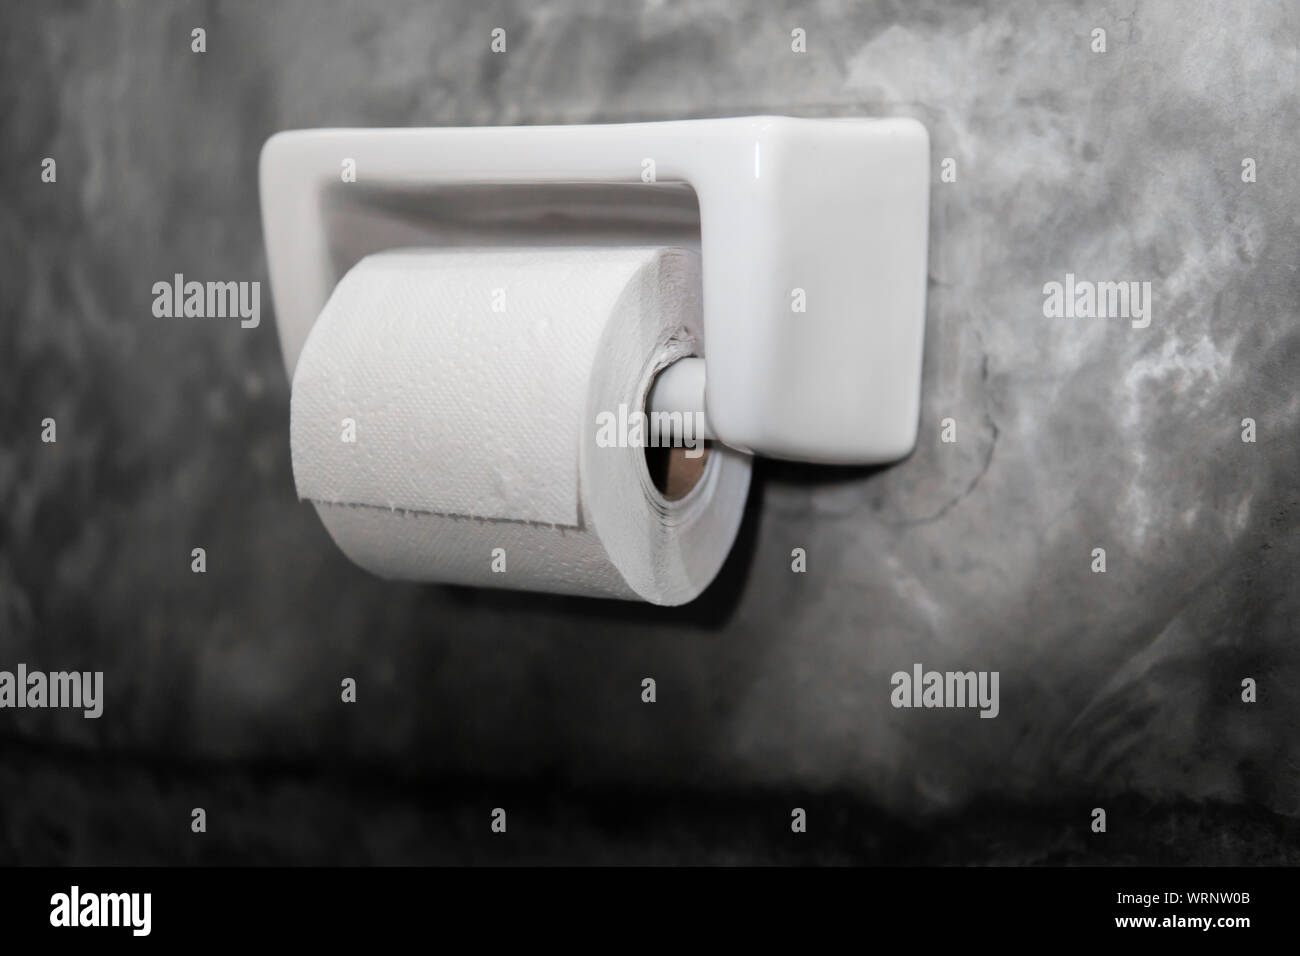 Page 2 Paper Towel Holder High Resolution Stock Photography And Images Alamy